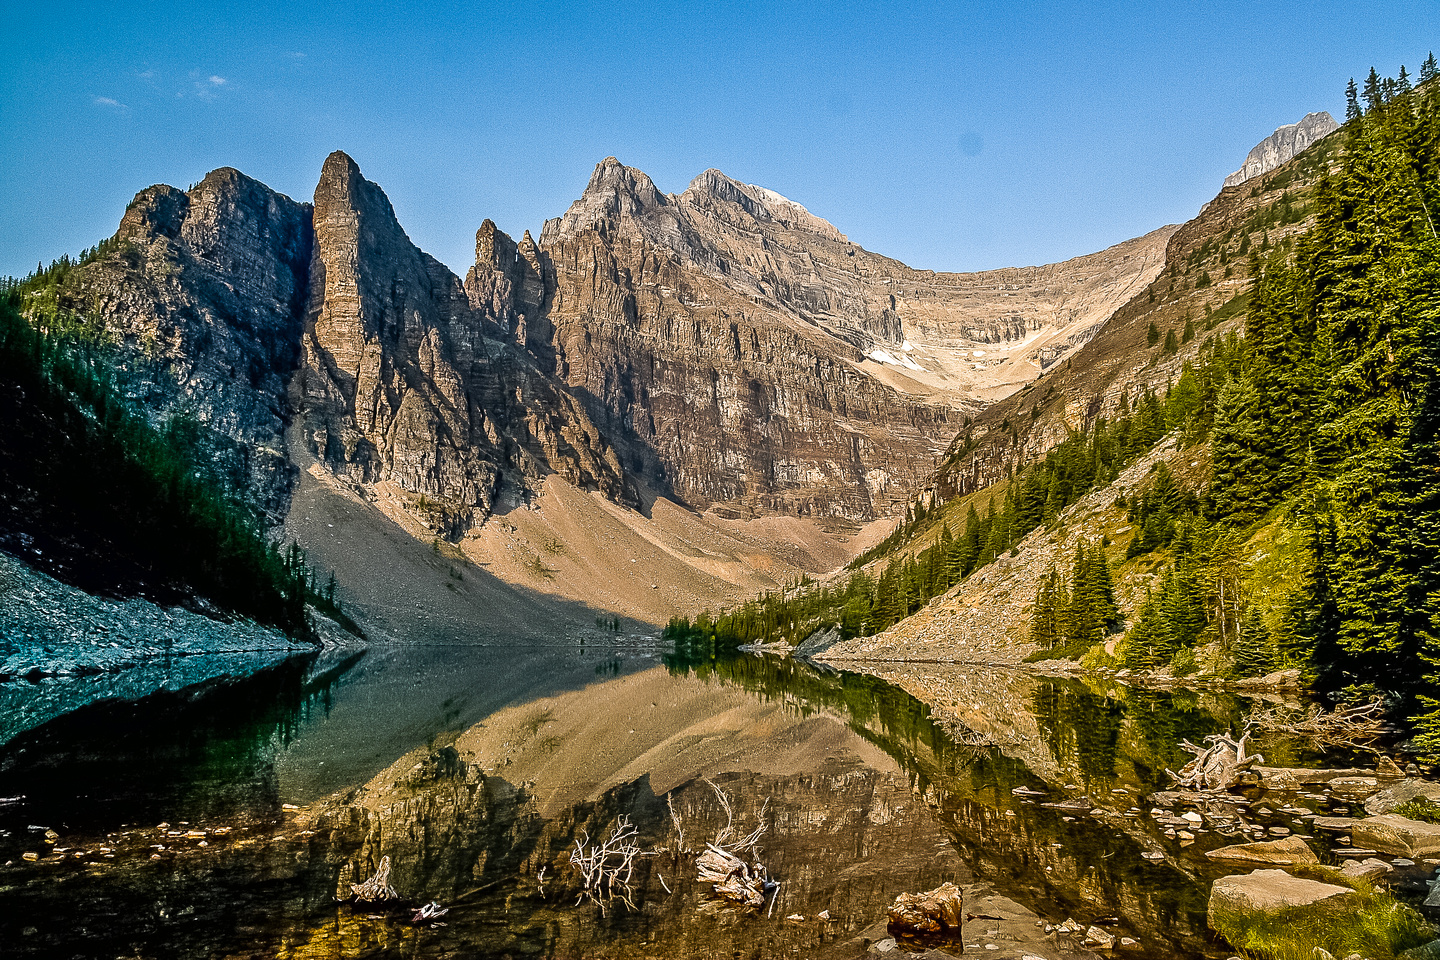 Lake Agnes reflects the surrounding terrain perfectly.